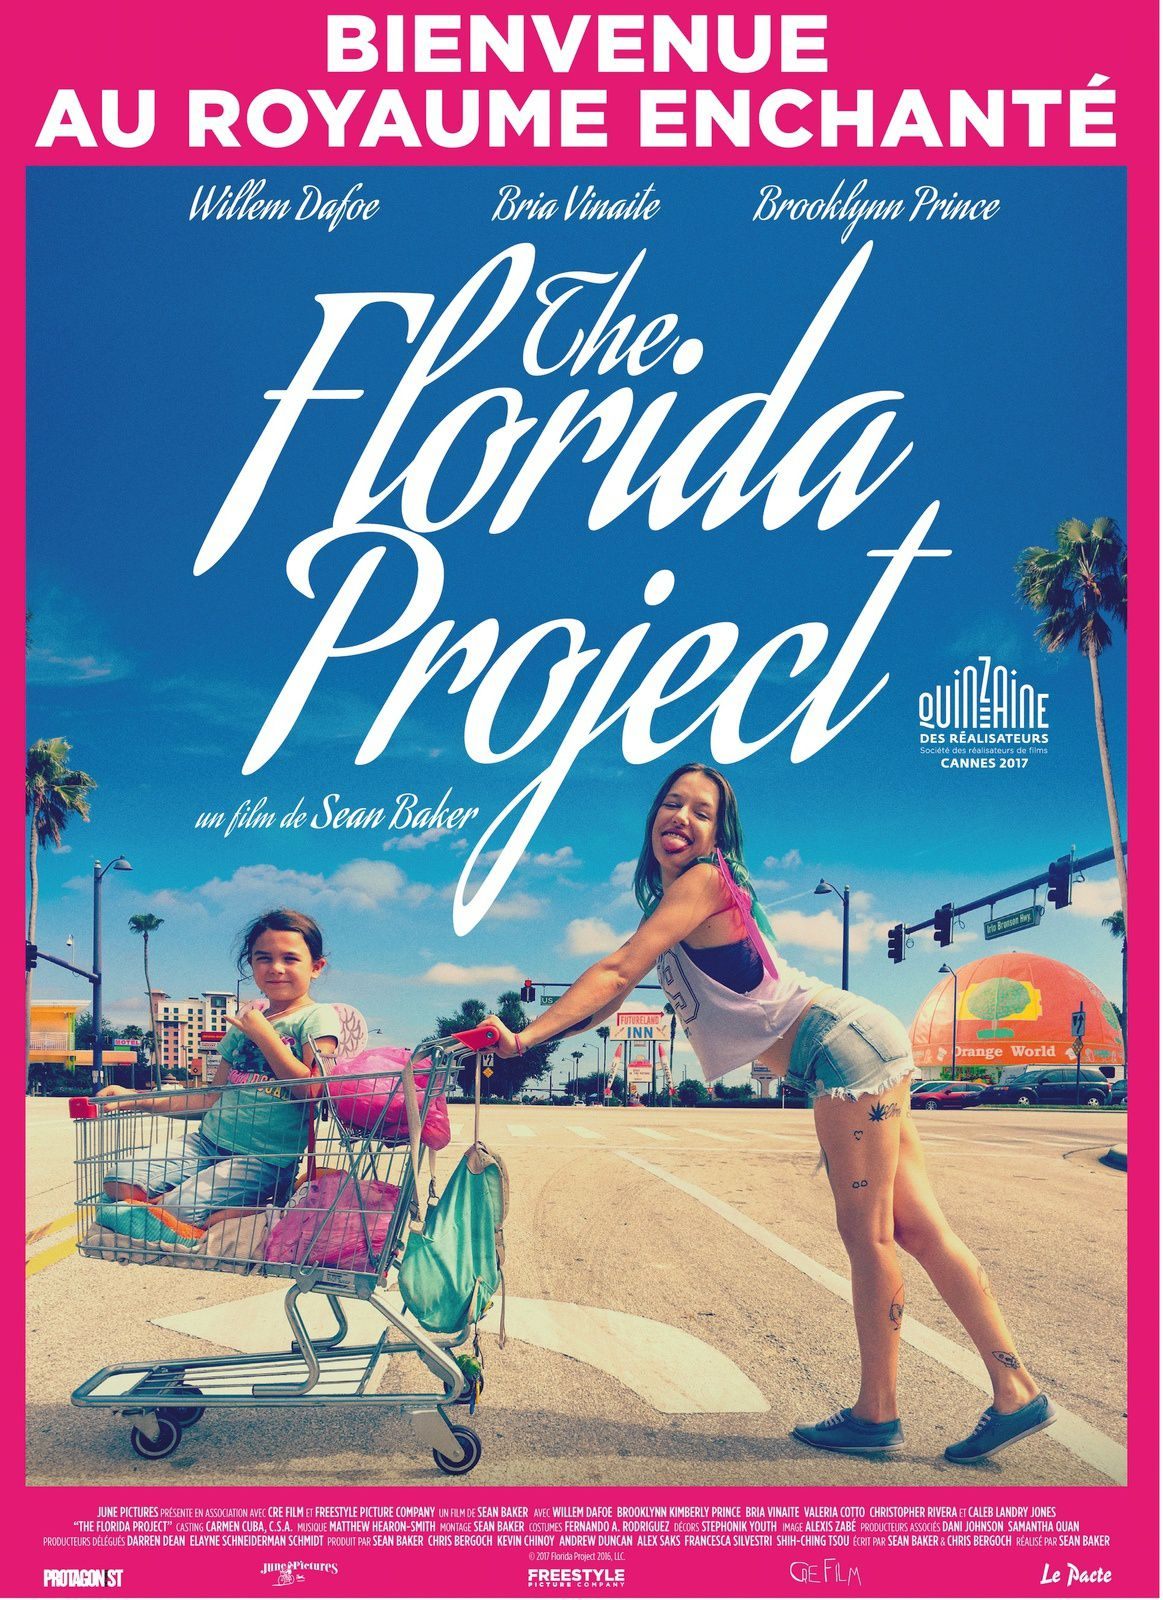 Bande-annonce du film The Florida Project, de Sean Baker.